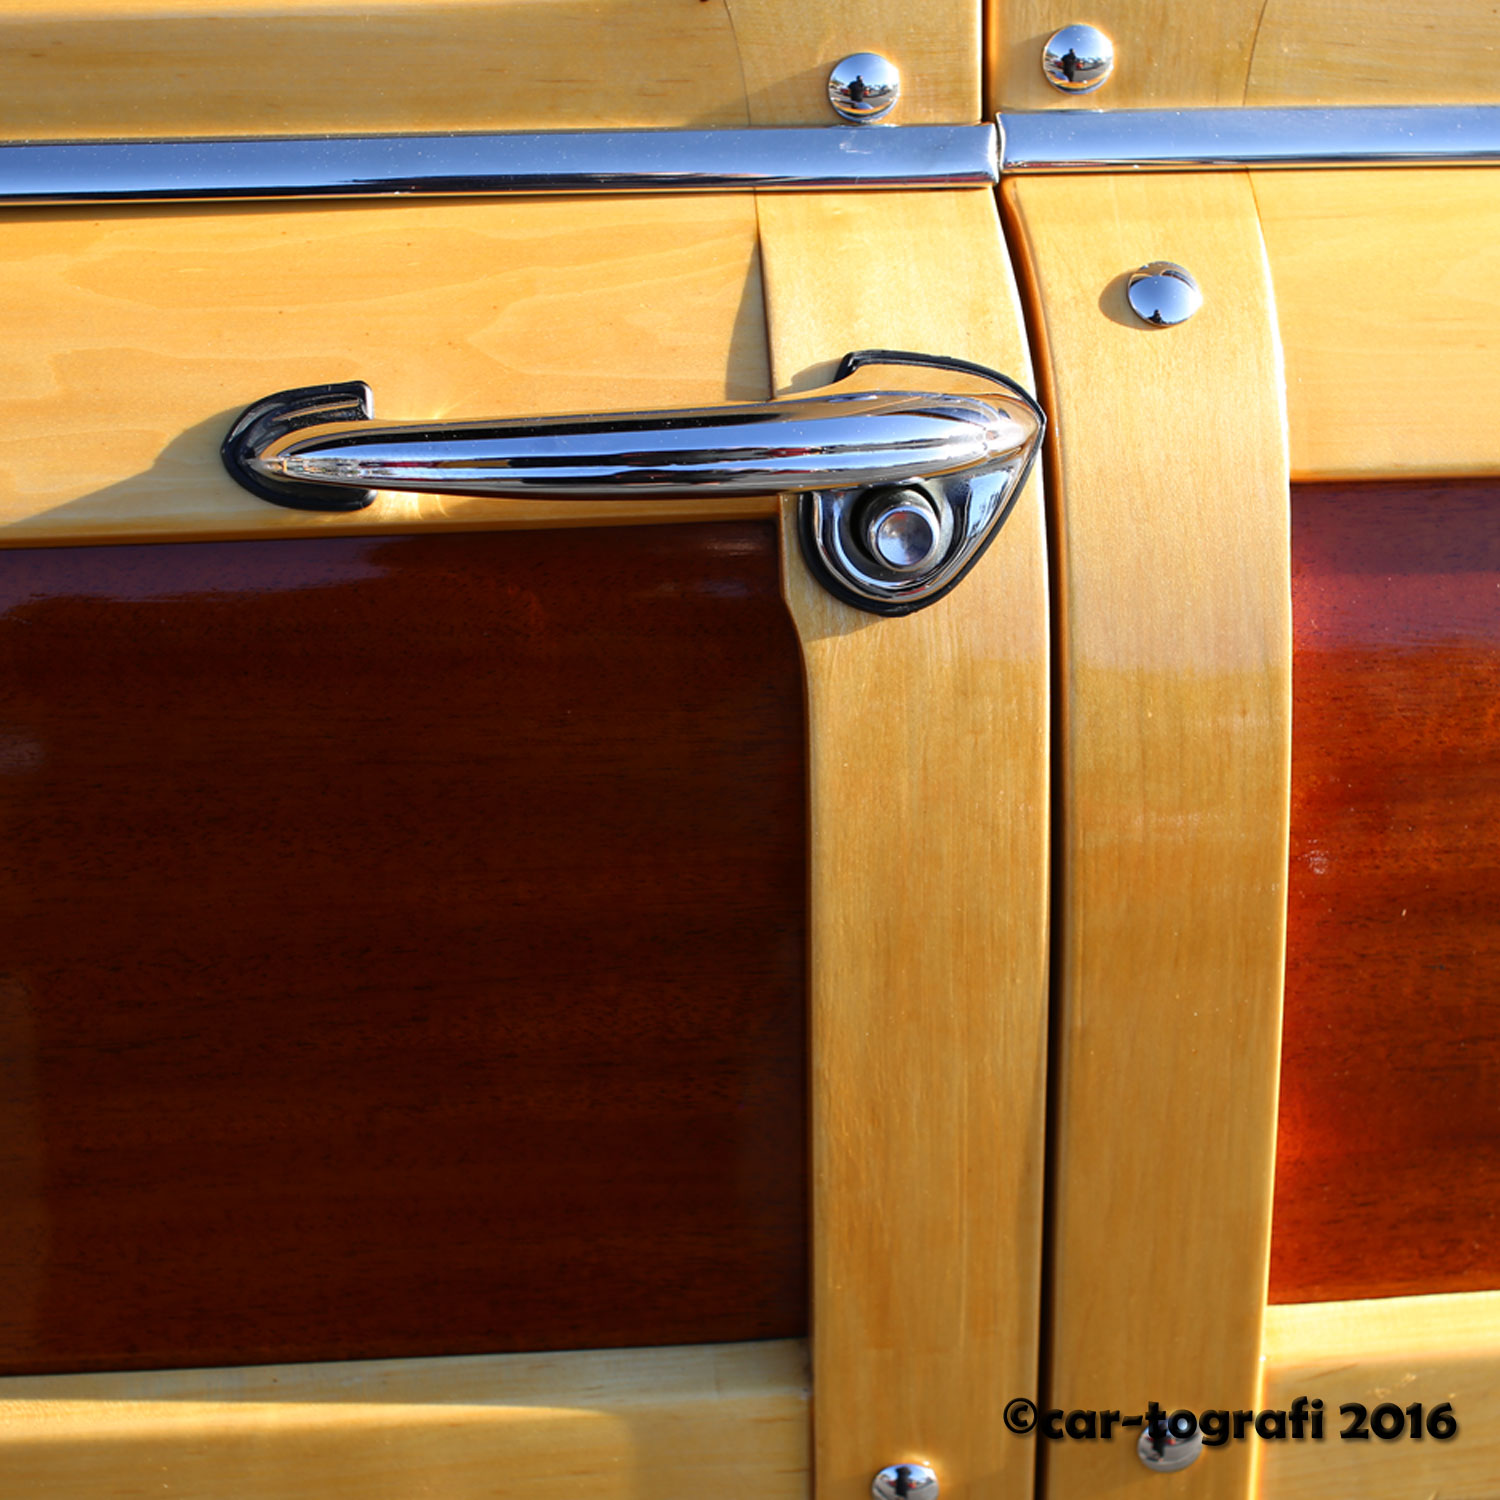 wood-doheny-car-tografi-23.jpg